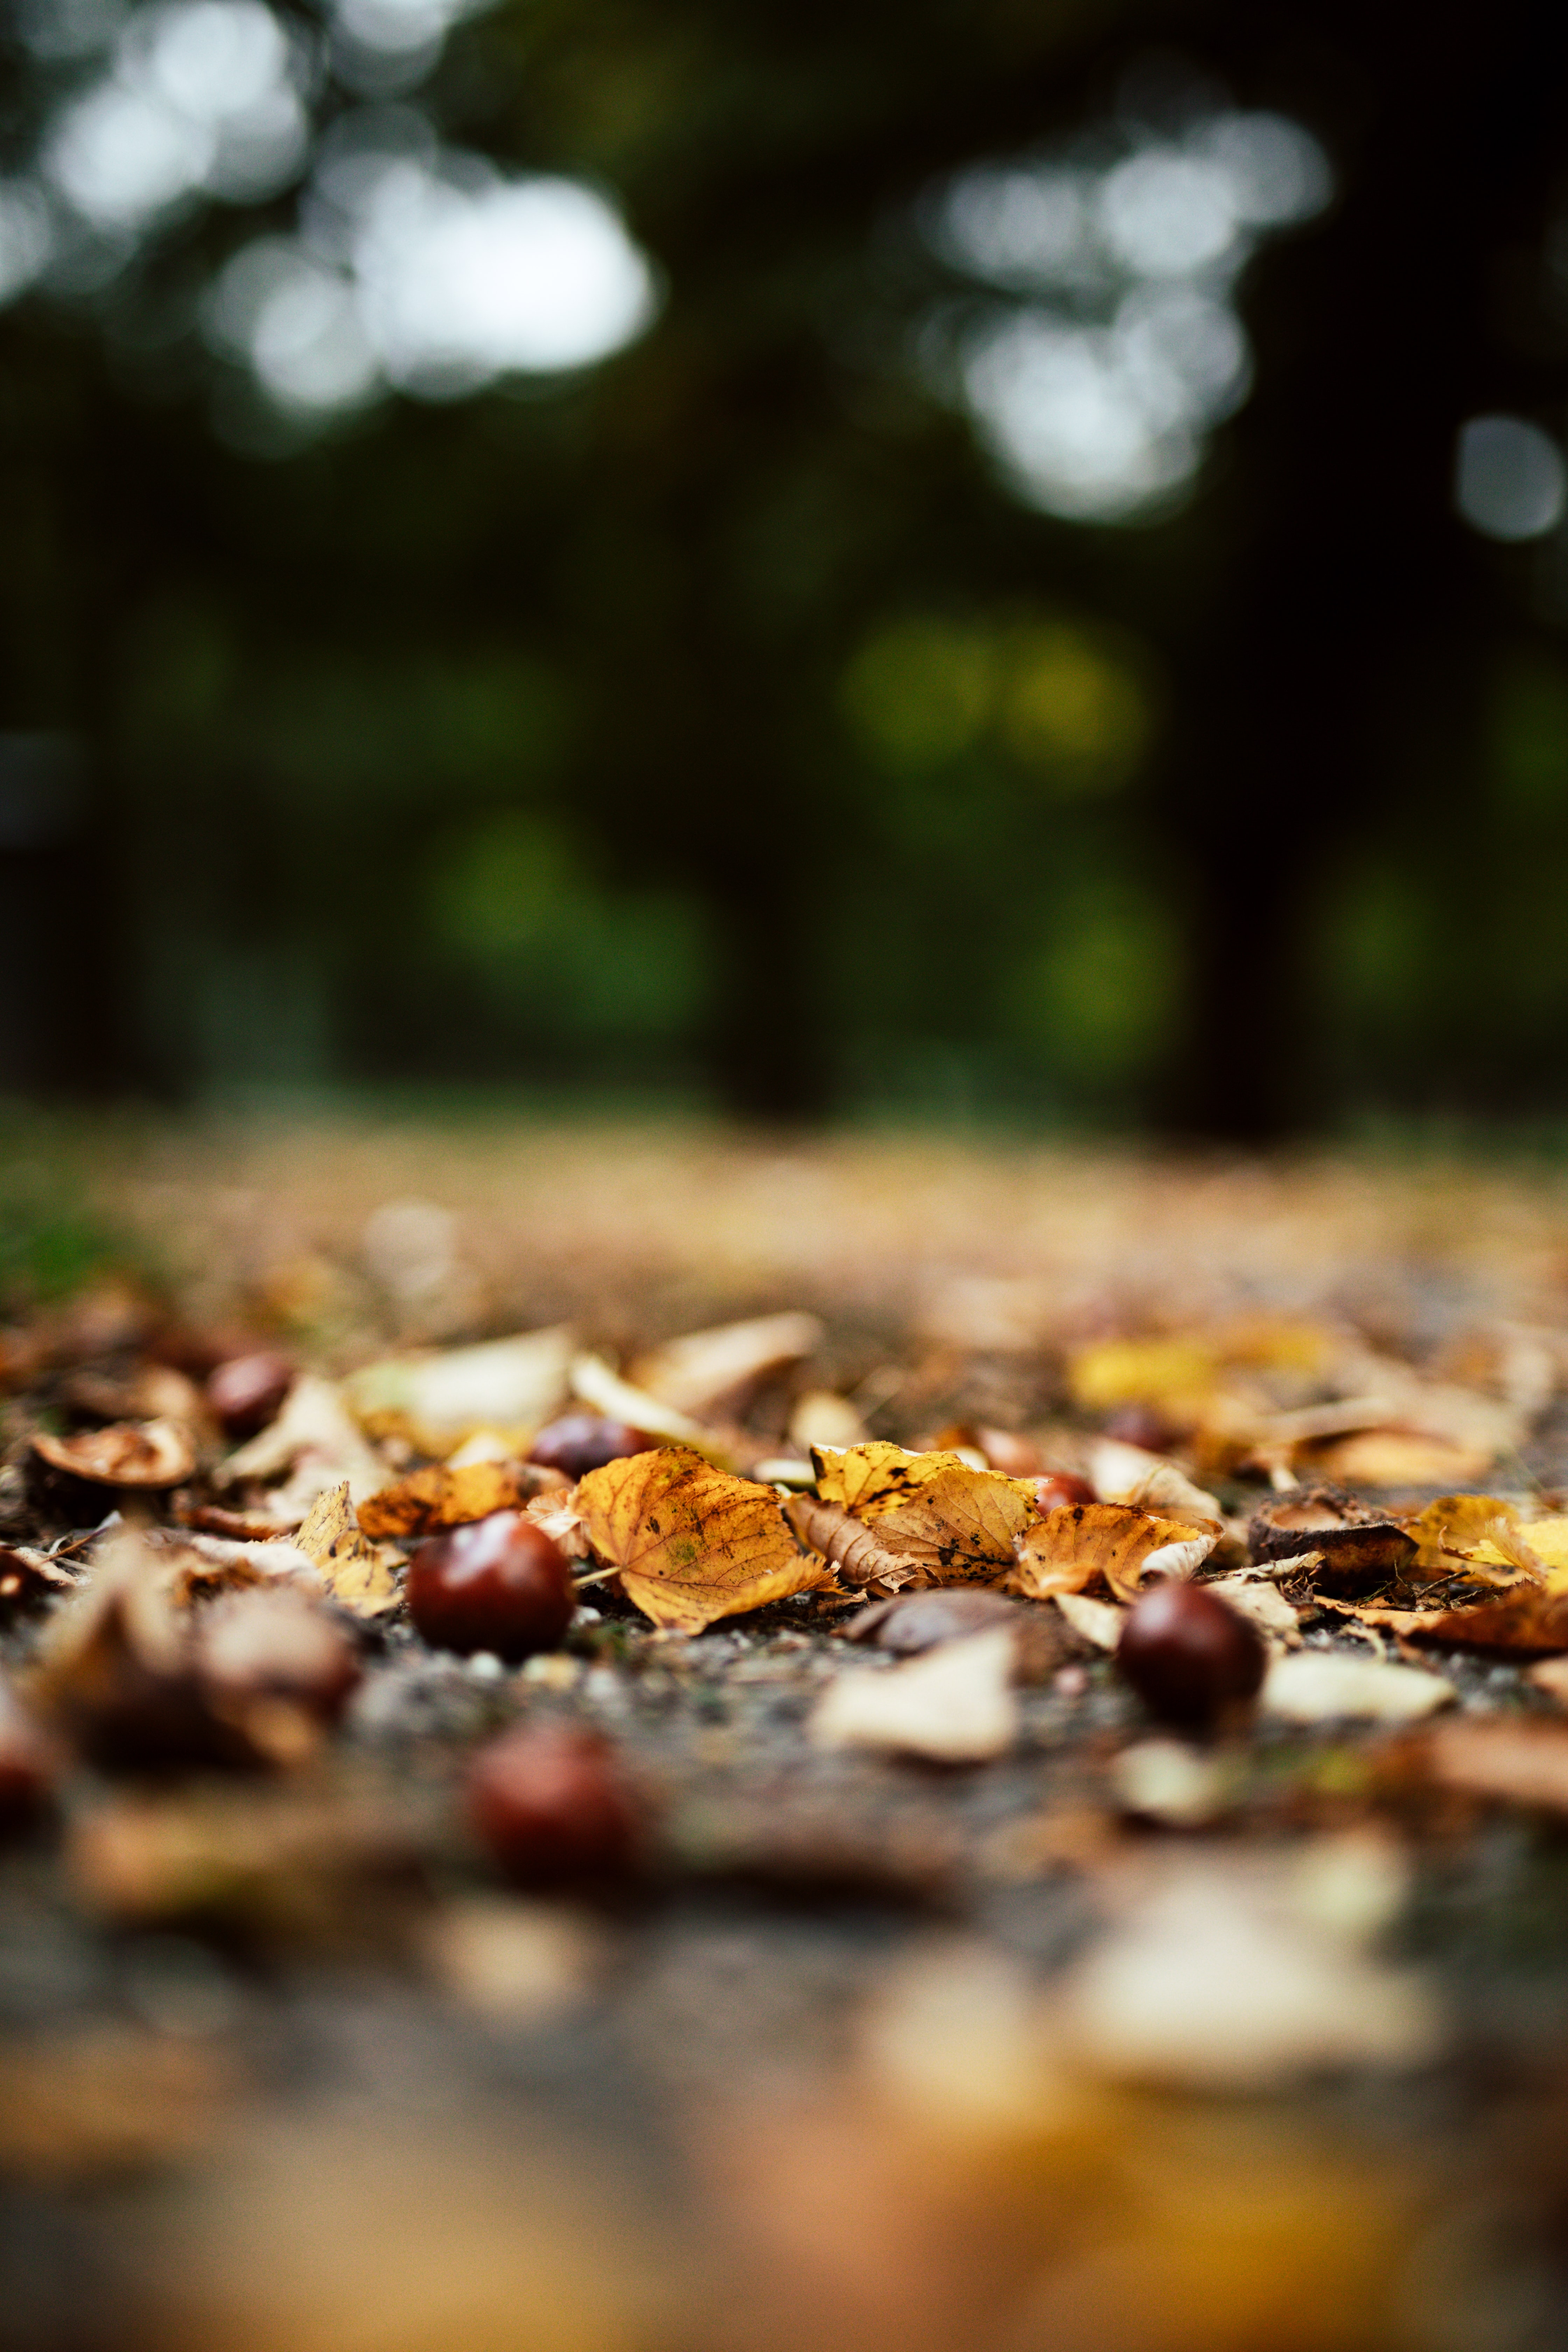 143293 download wallpaper Nature, Leaves, Autumn, Forest, Chestnuts screensavers and pictures for free